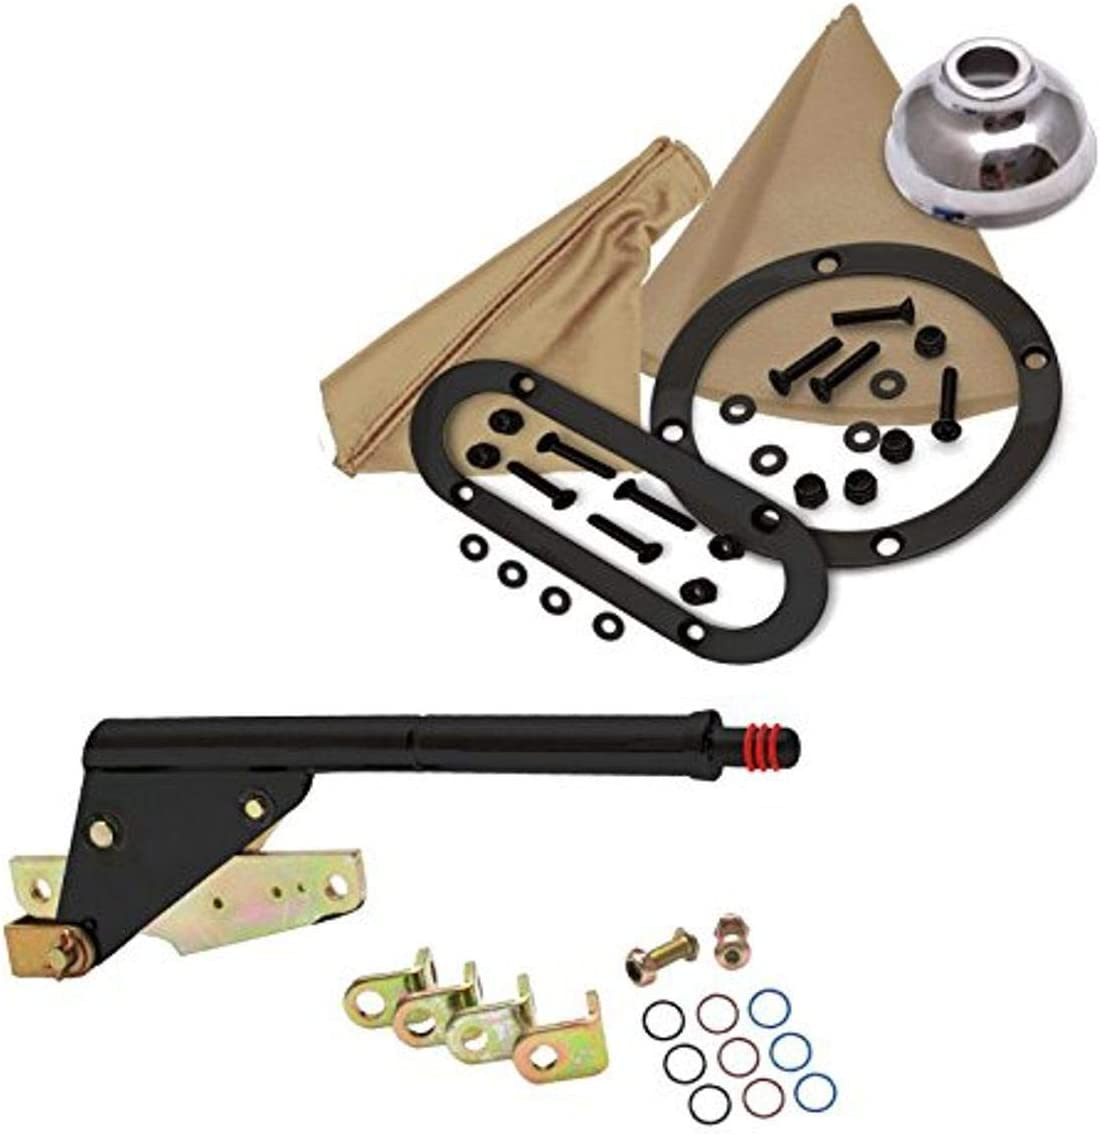 American Shifter Popular shop is the lowest price challenge 409738 Kit TH200 Brake Cla Ranking integrated 1st place E Cable 10